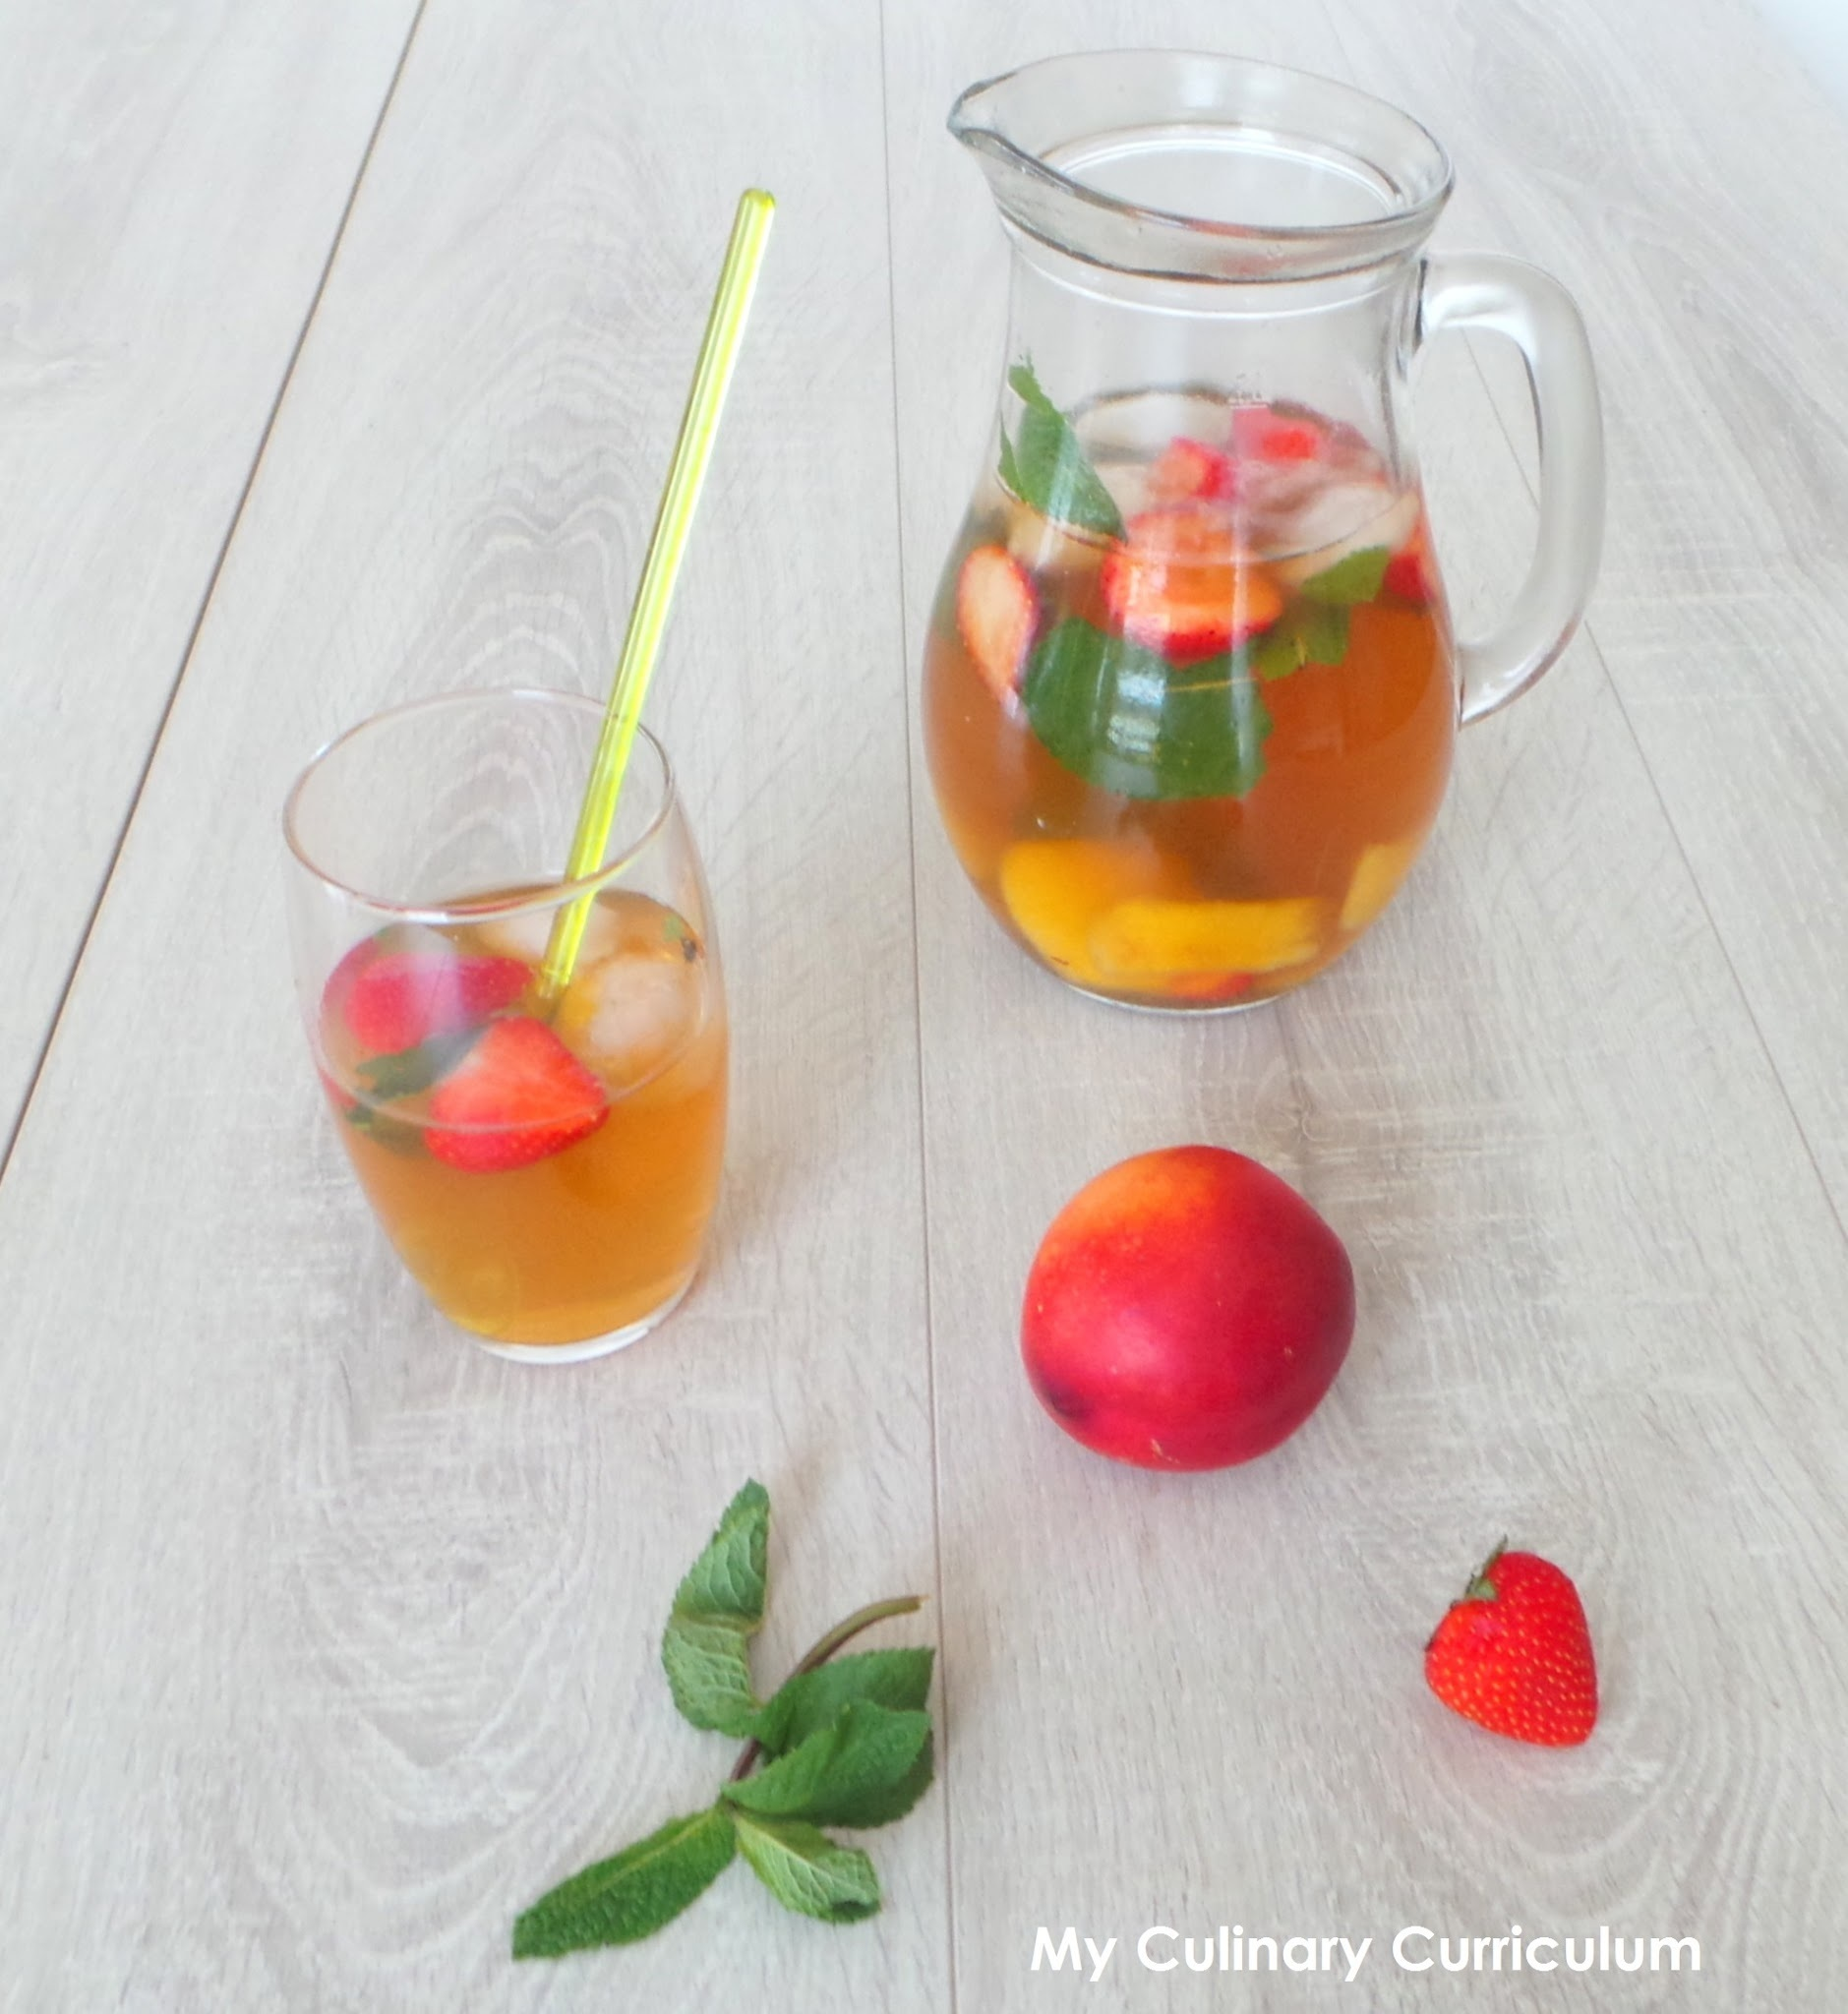 Thé vert glacé nectarines, fraises et menthe (Iced green tea nectarines, strawberries and mint)